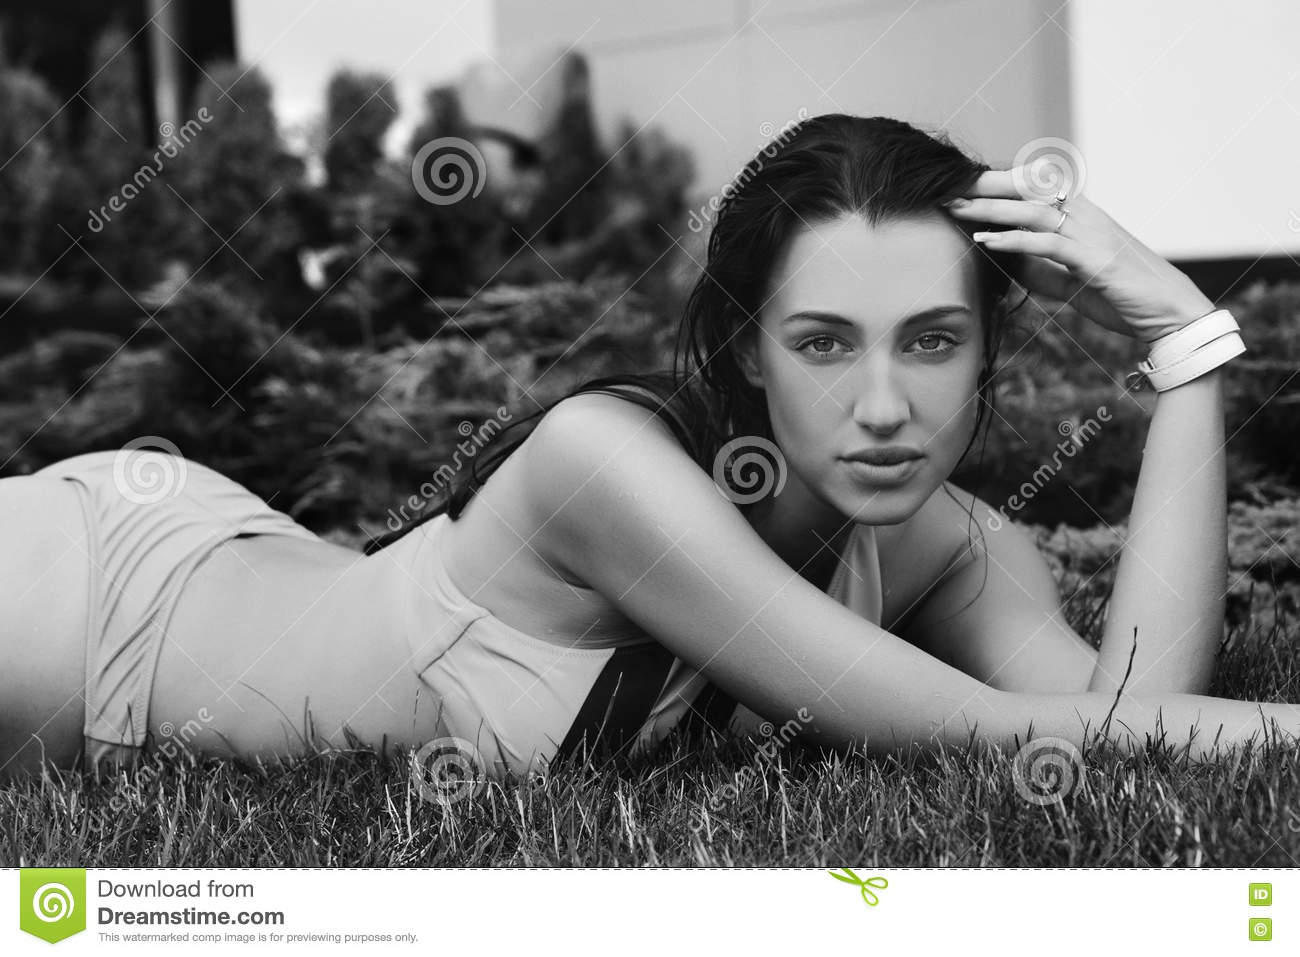 Black and white portrait of a beautiful caucasian woman